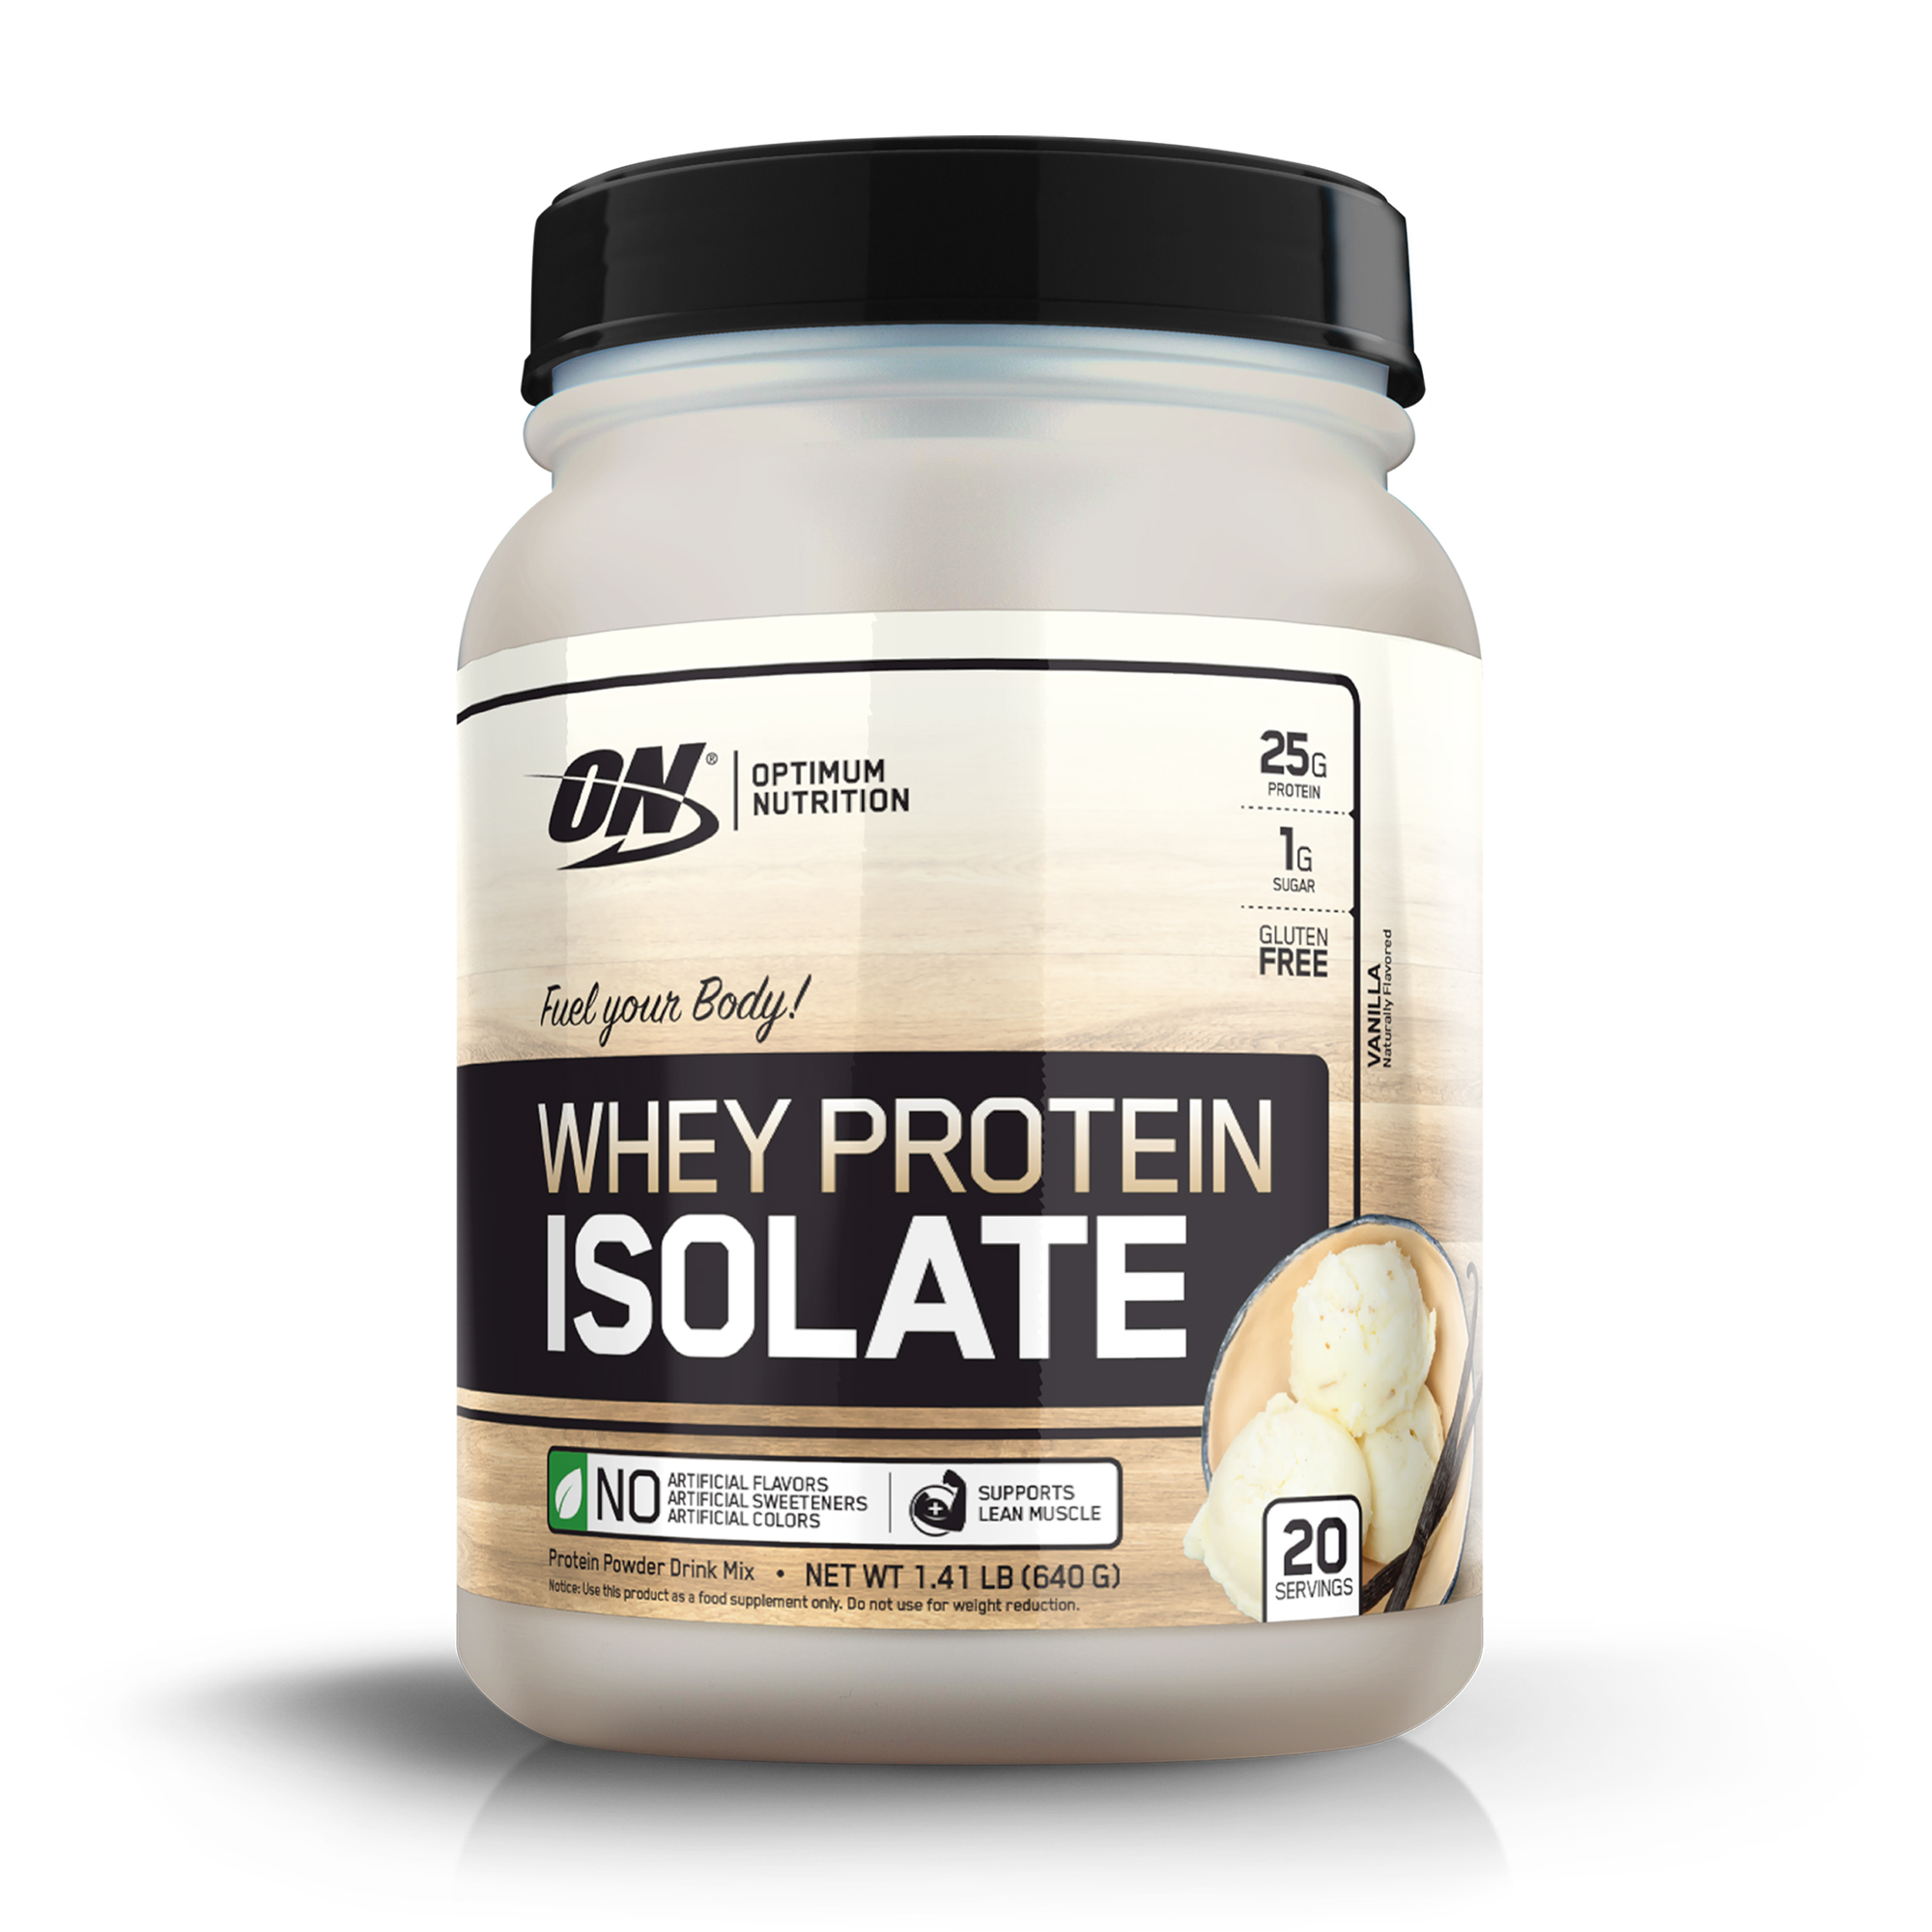 Optimum Nutrition Whey Protein Isolate, Vanilla, 25g Protein, 20 Servings